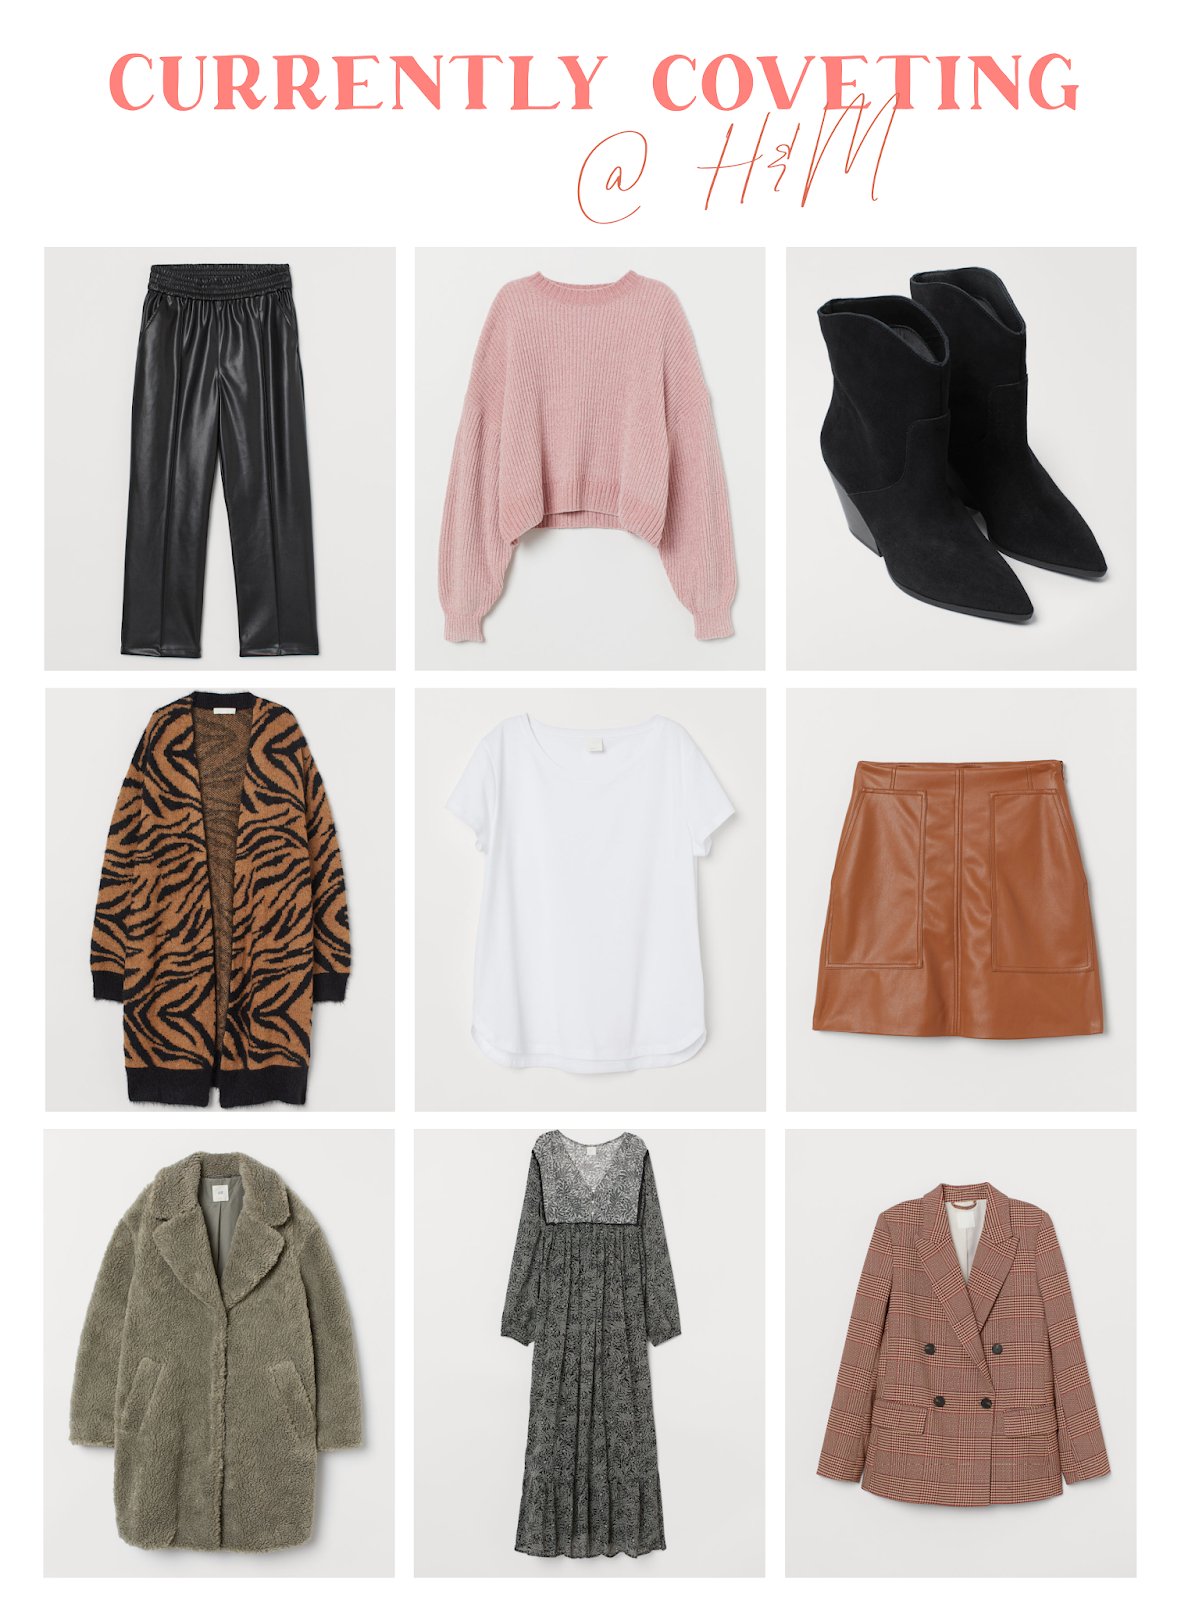 Currently Coveting: H&M Fall